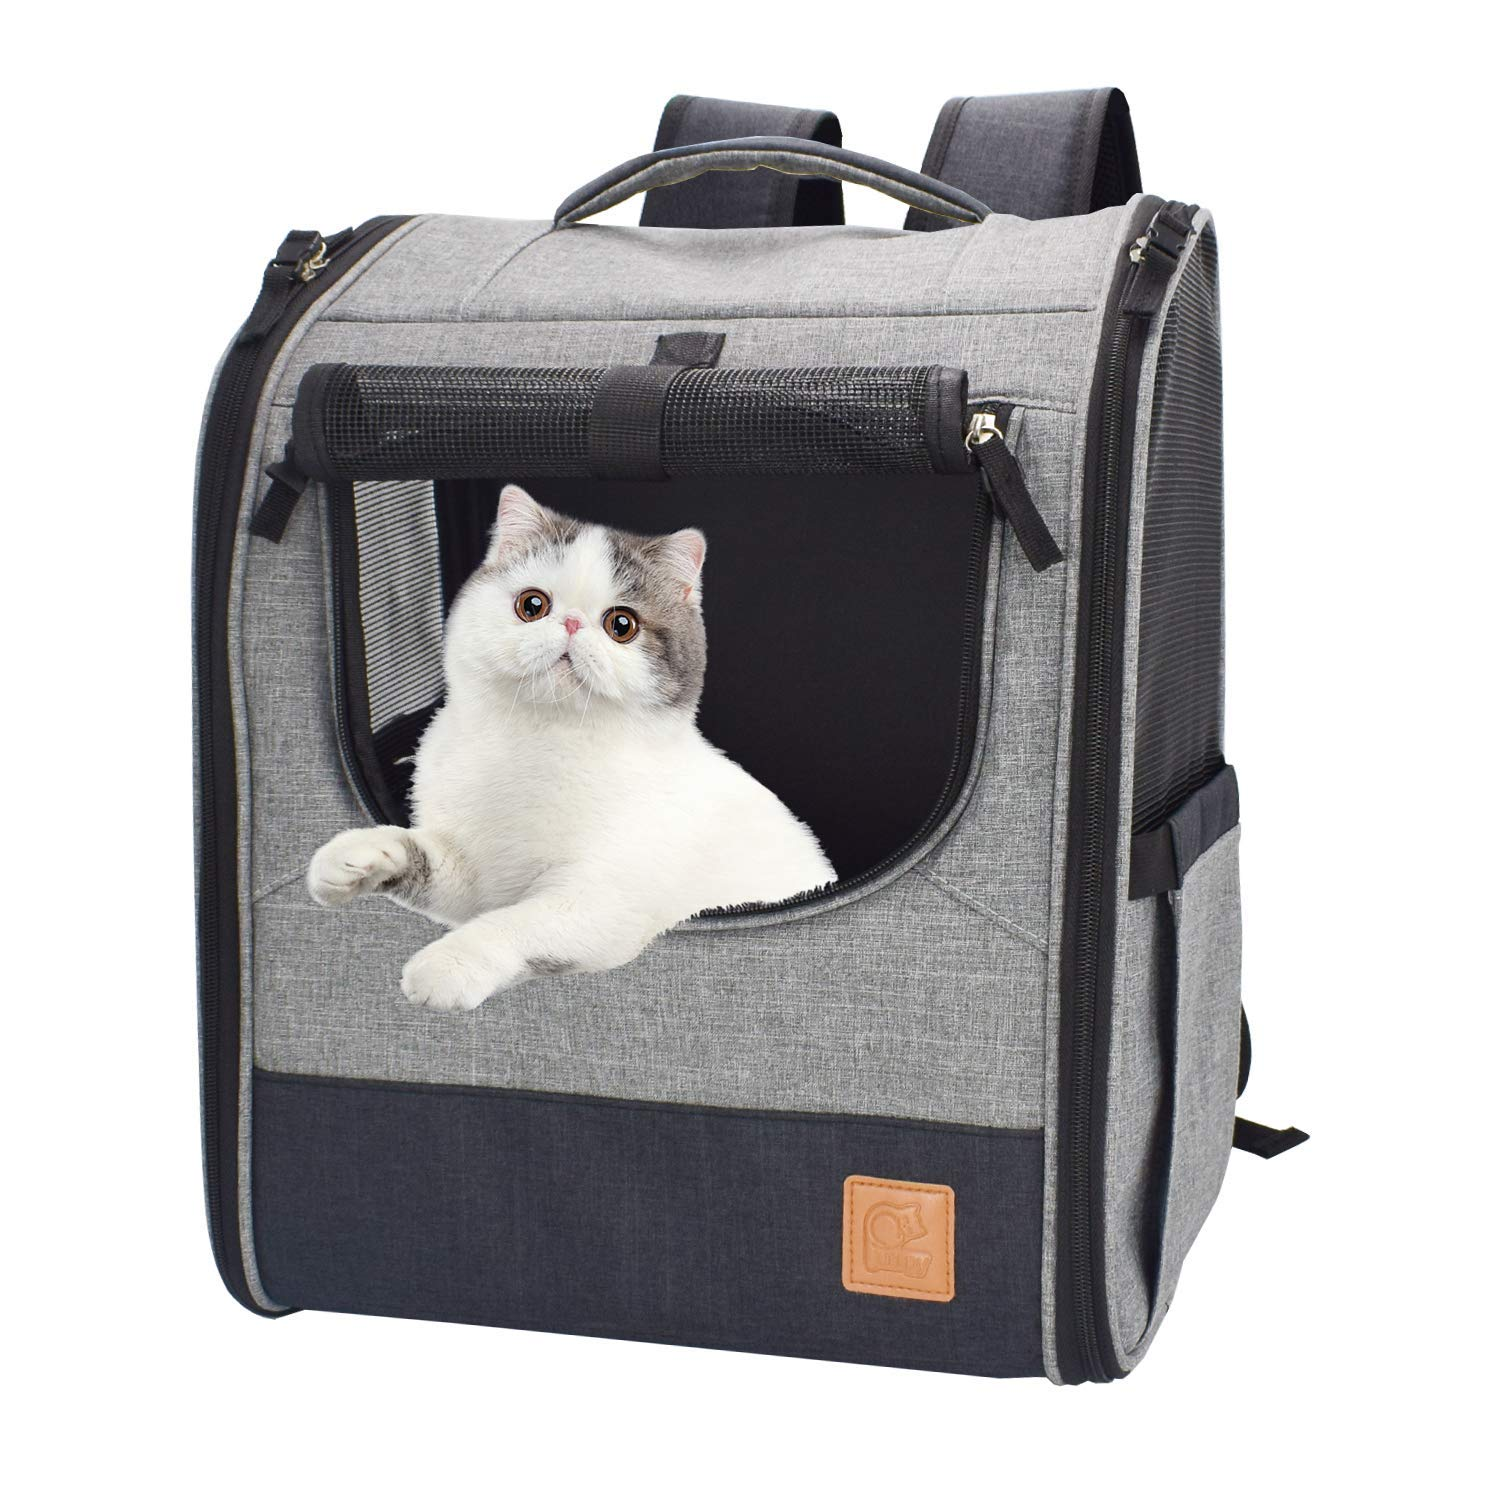 Purrpy Pet Carrier Backpack Small Dog Cat Puppies Carrier Airline Approved Ventilated Comfortable Pet Travel Backpack, Grey